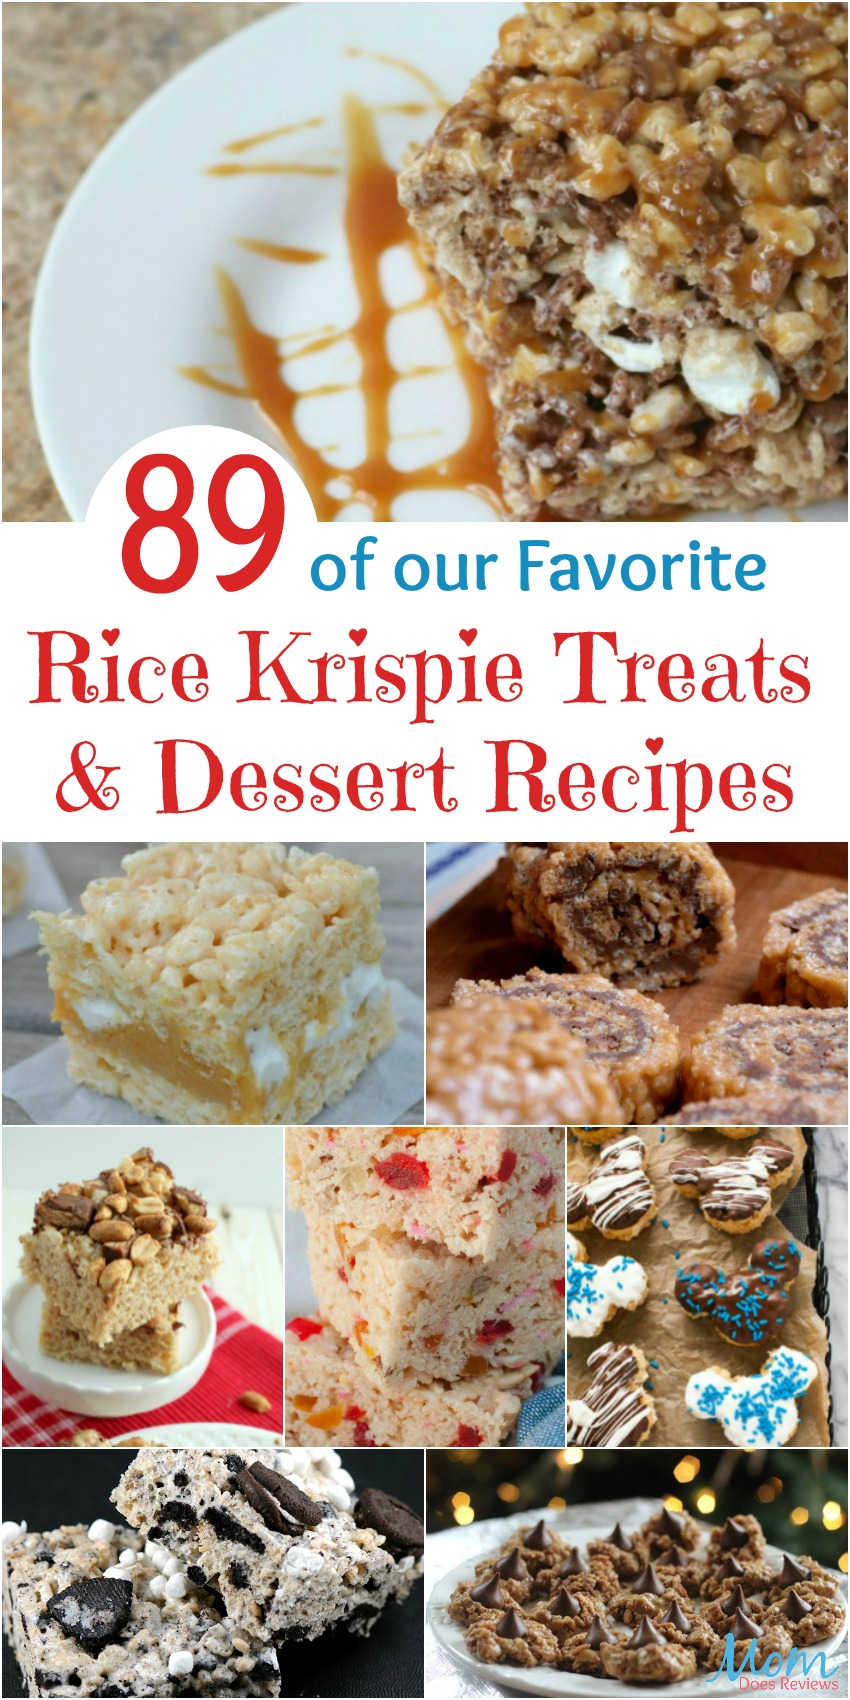 89 of our Favorite Rice Krispie Treats & Dessert #Recipes #desserts #treats #sweets #yummy #ricekrispietreats